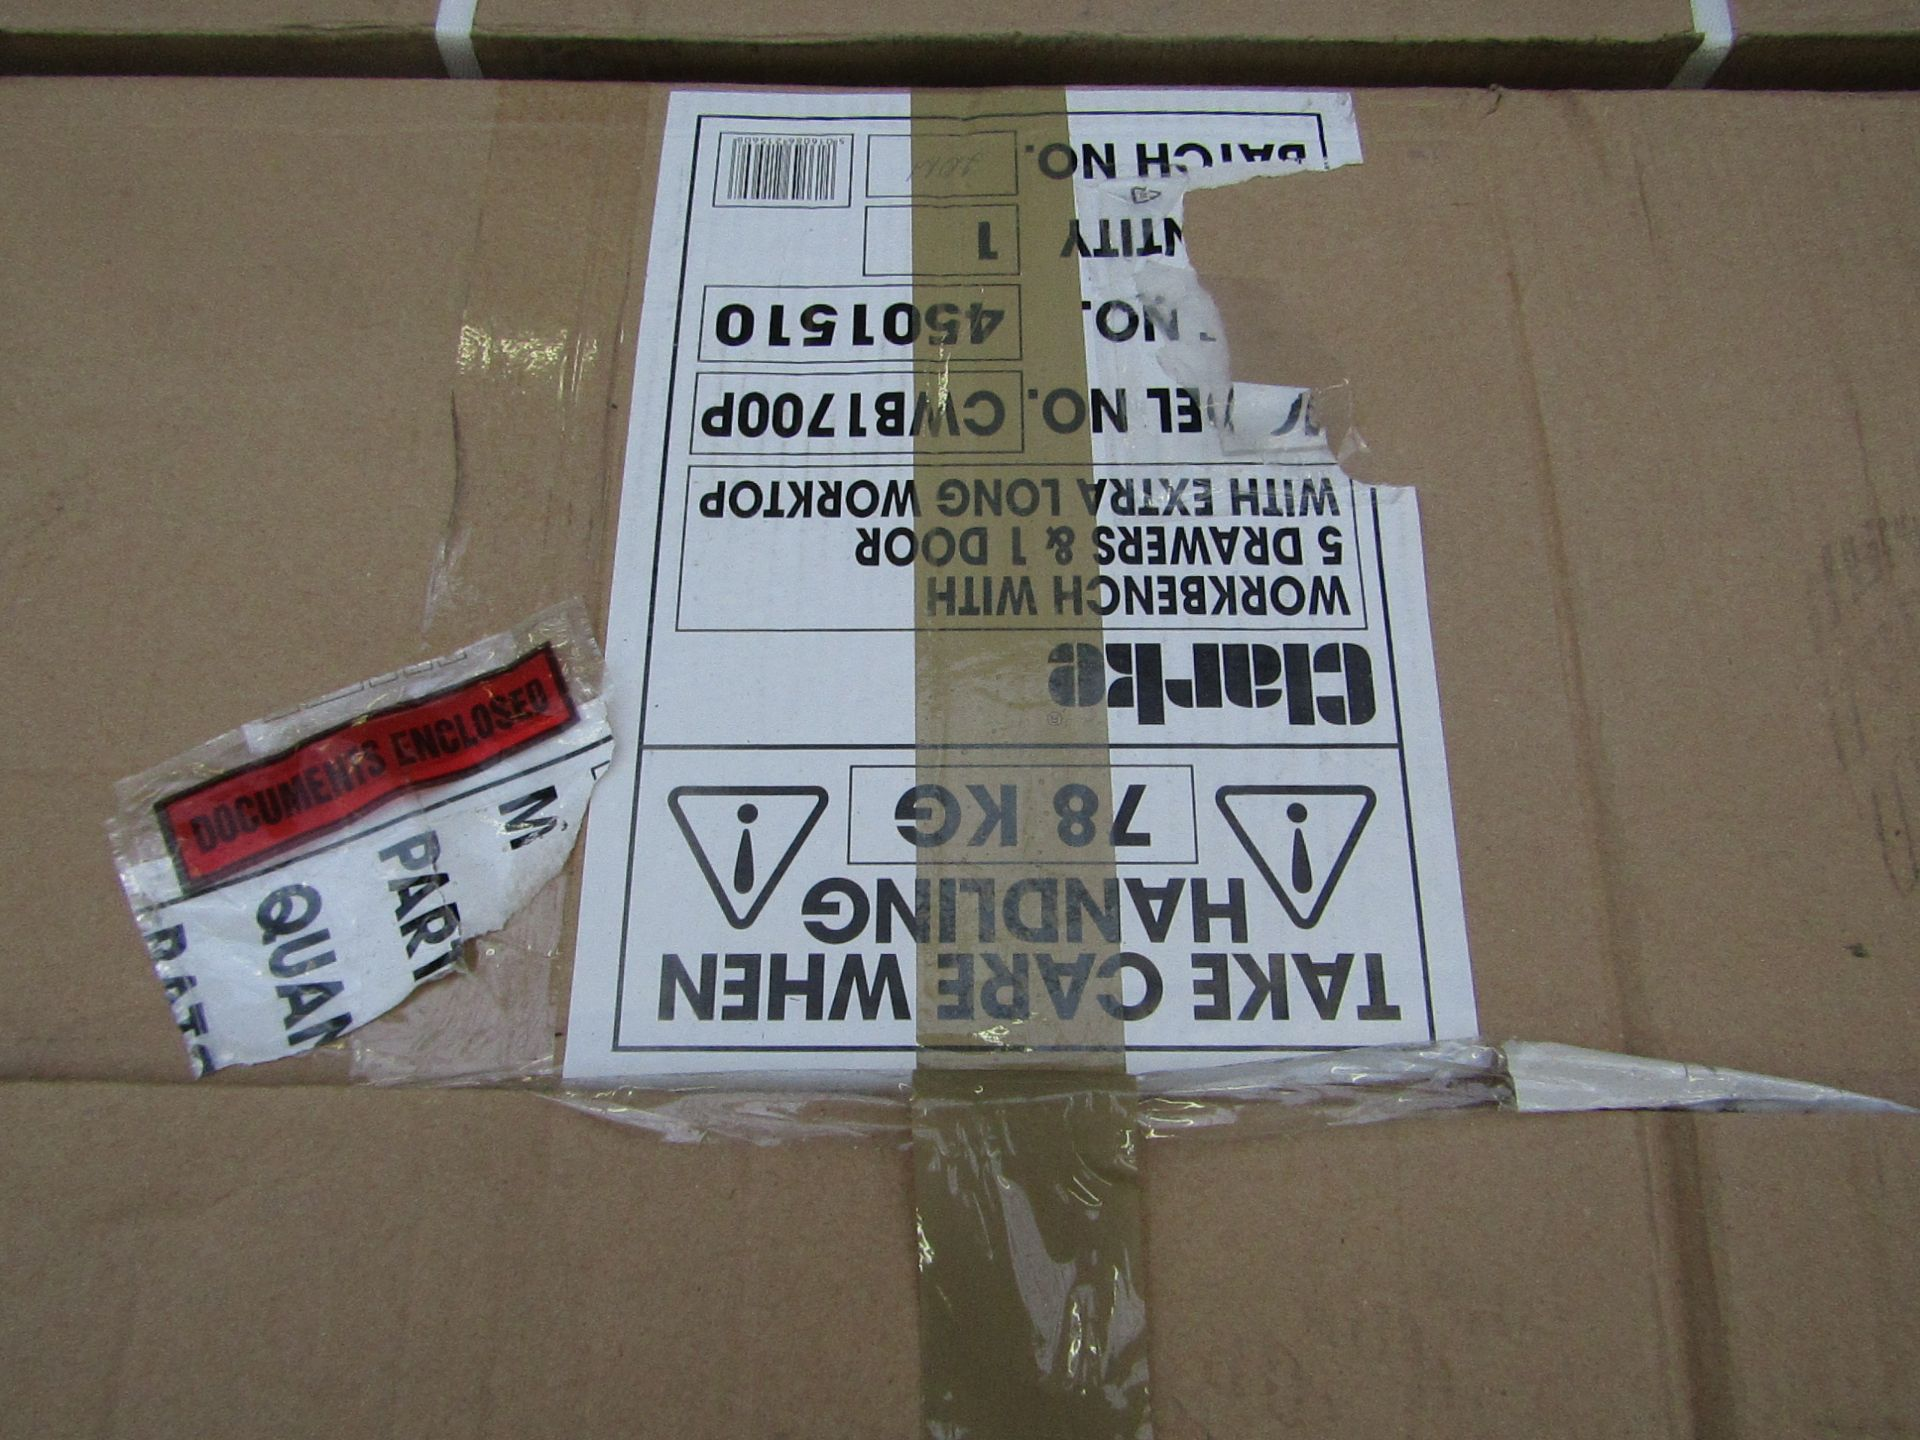 1x CL BENCH 5DR 1DOOR 9295, This lot is a Machine Mart product which is raw and Completely unchecked